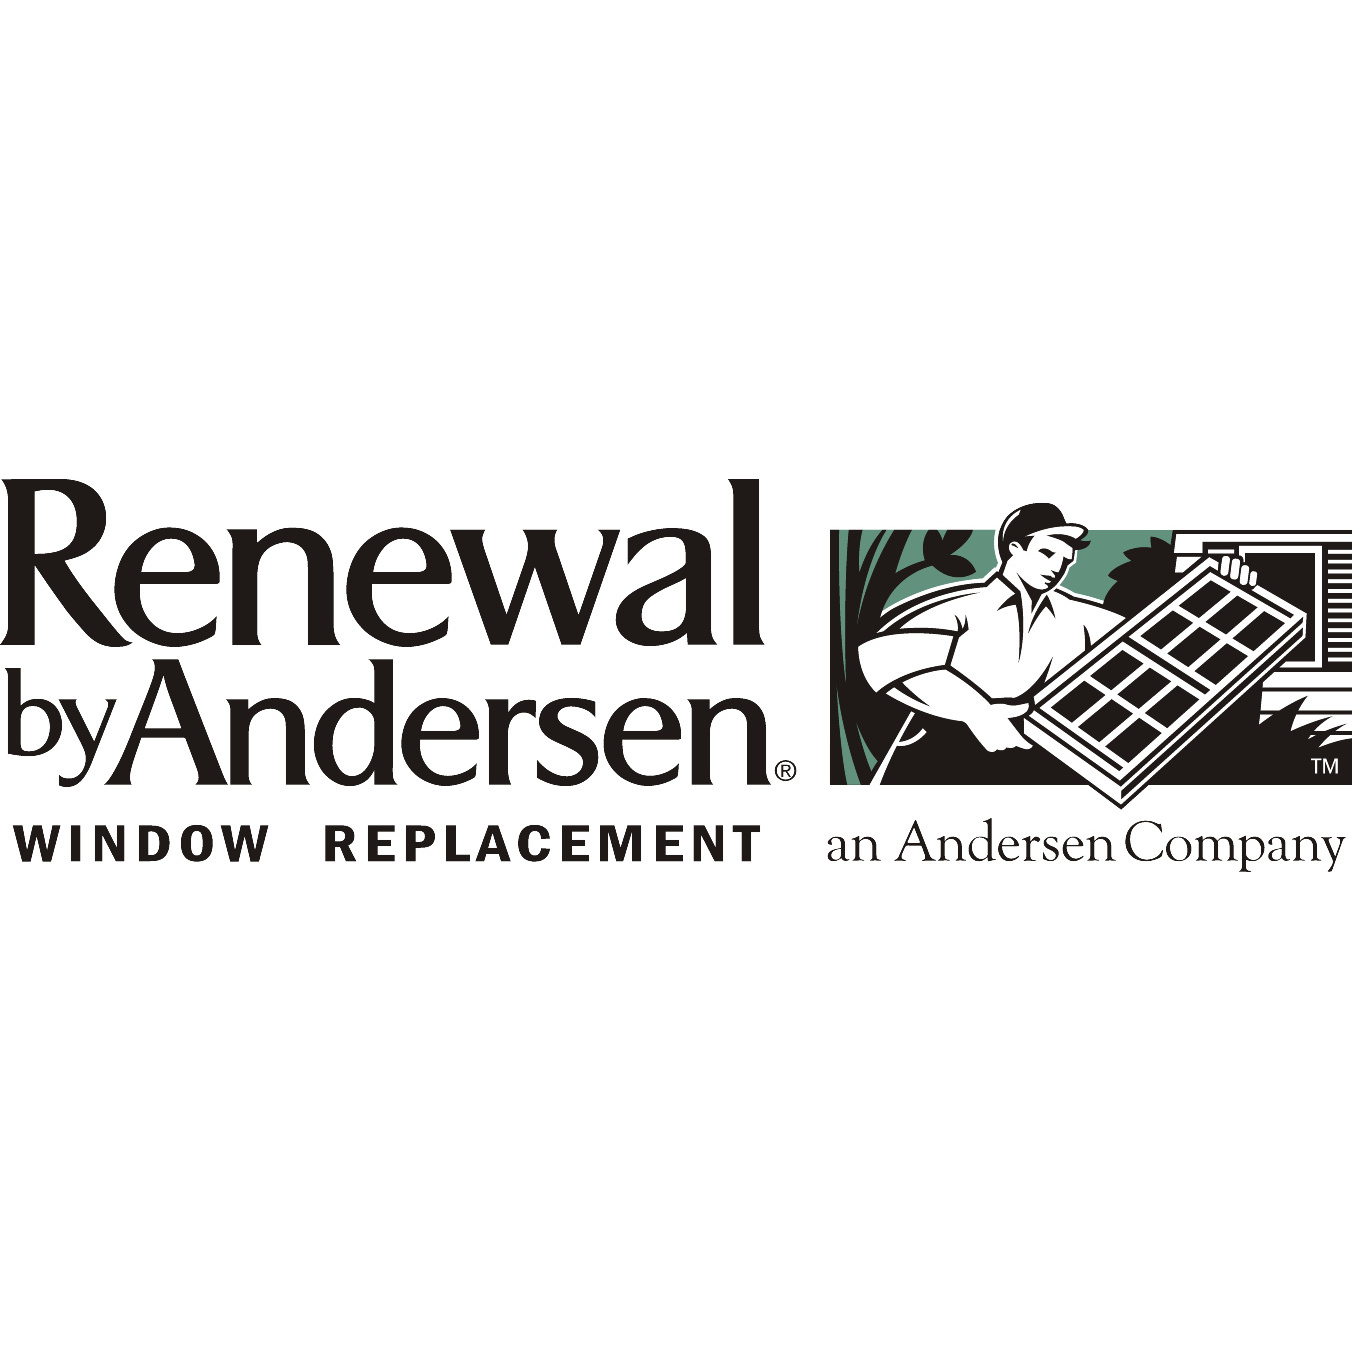 Renewal by Andersen of Connecticut